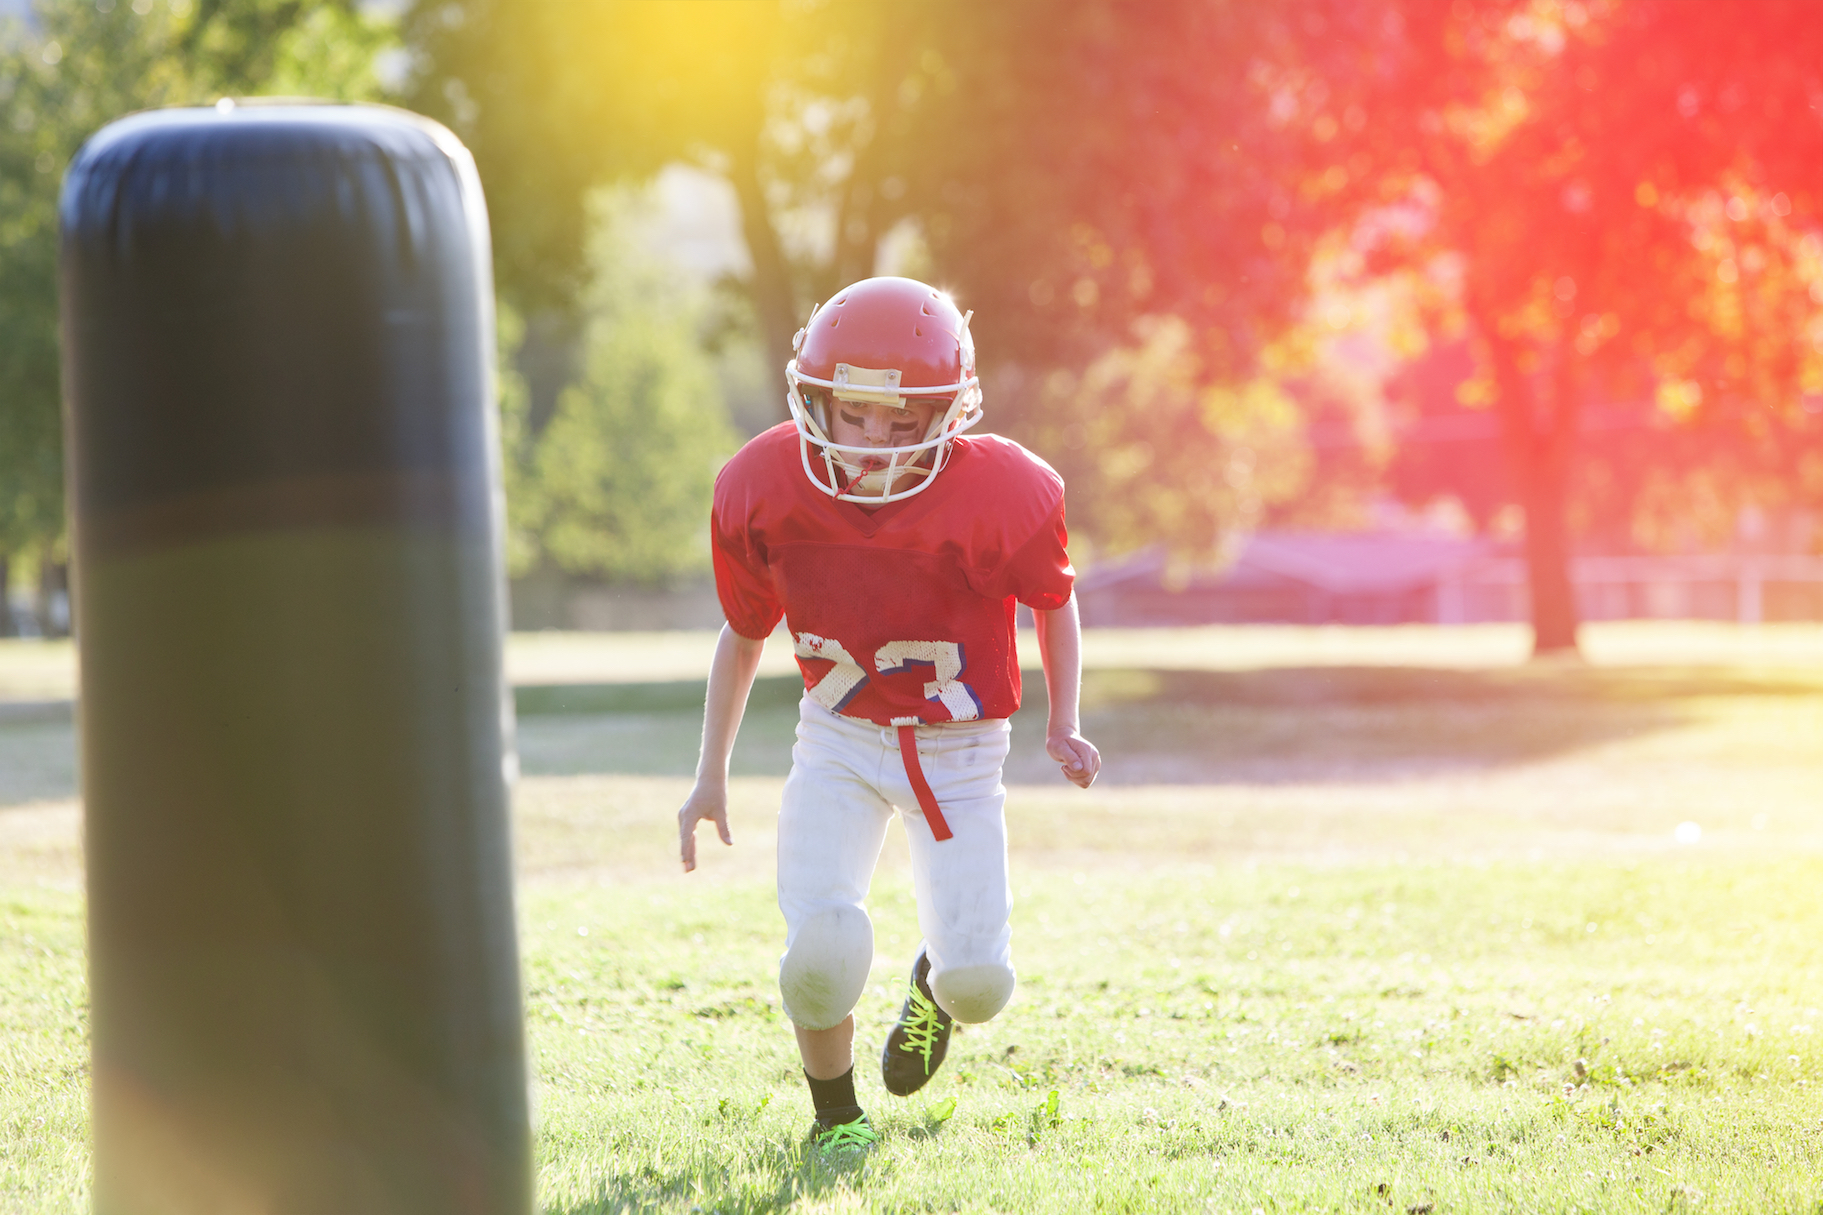 New research reveals that young football players with a history of concussion impacts experience brain changes after one season of play.